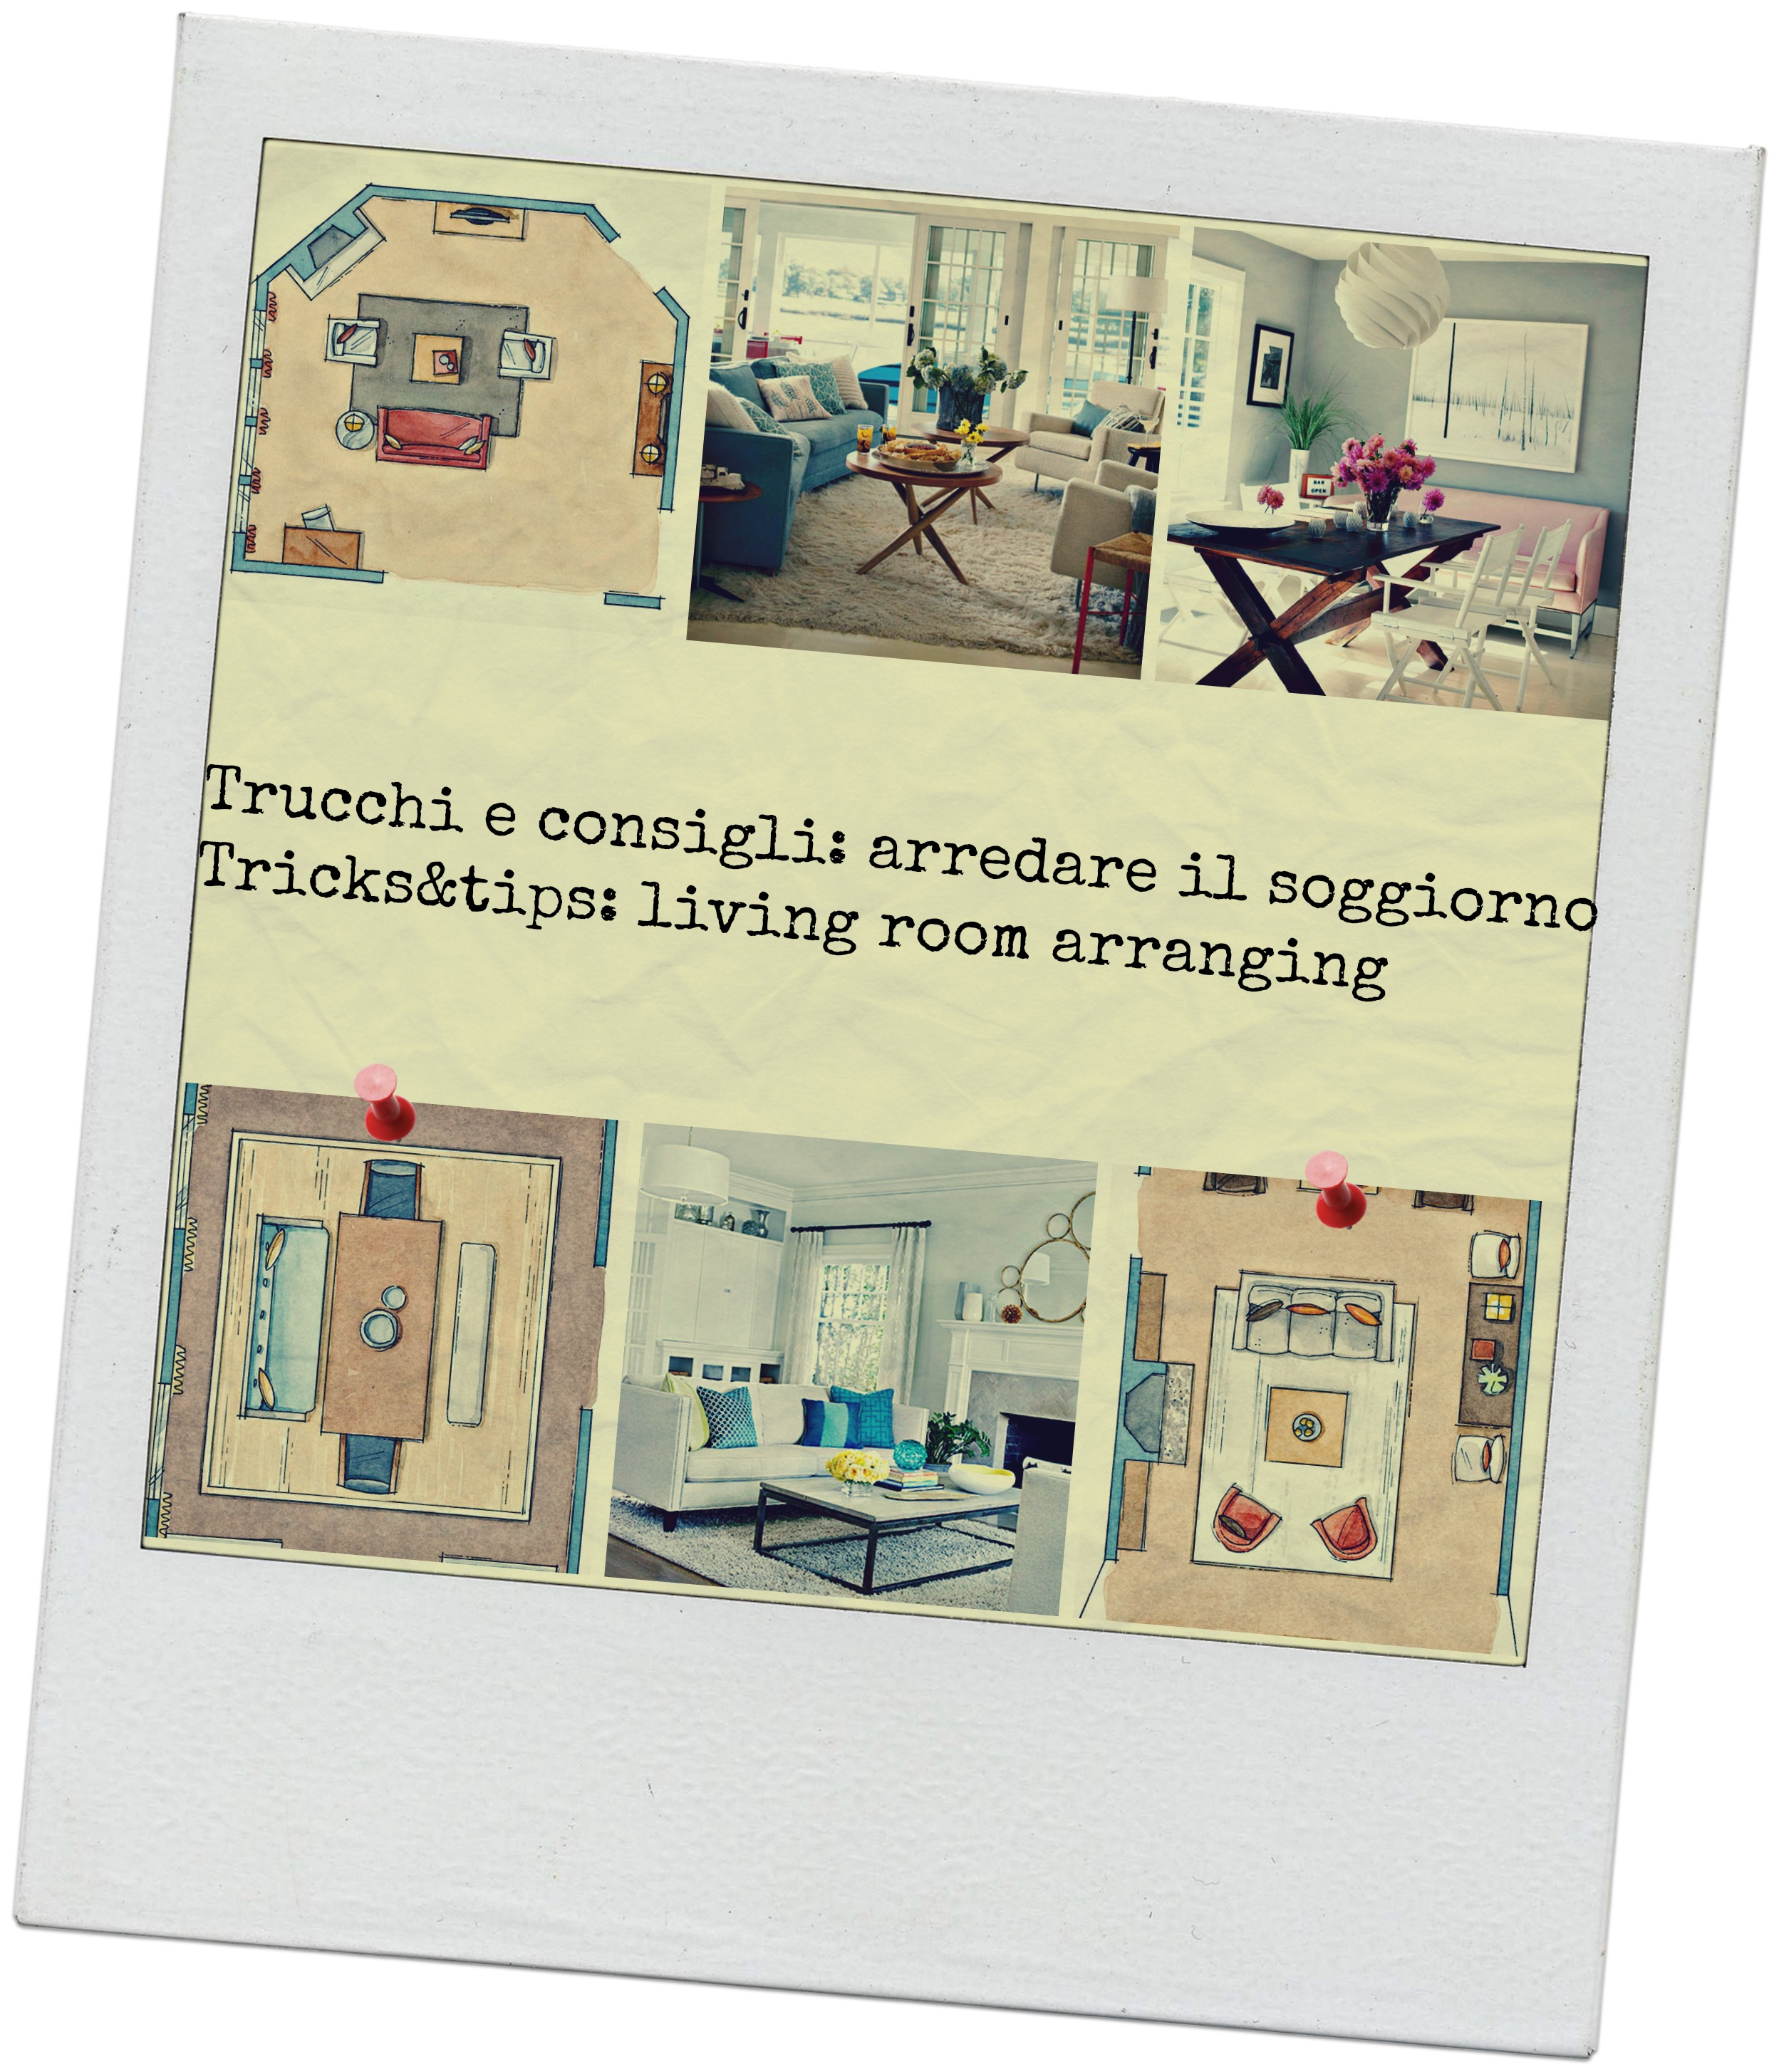 Trucchi per arredare il soggiorno * Tips & tricks for living room decorat...